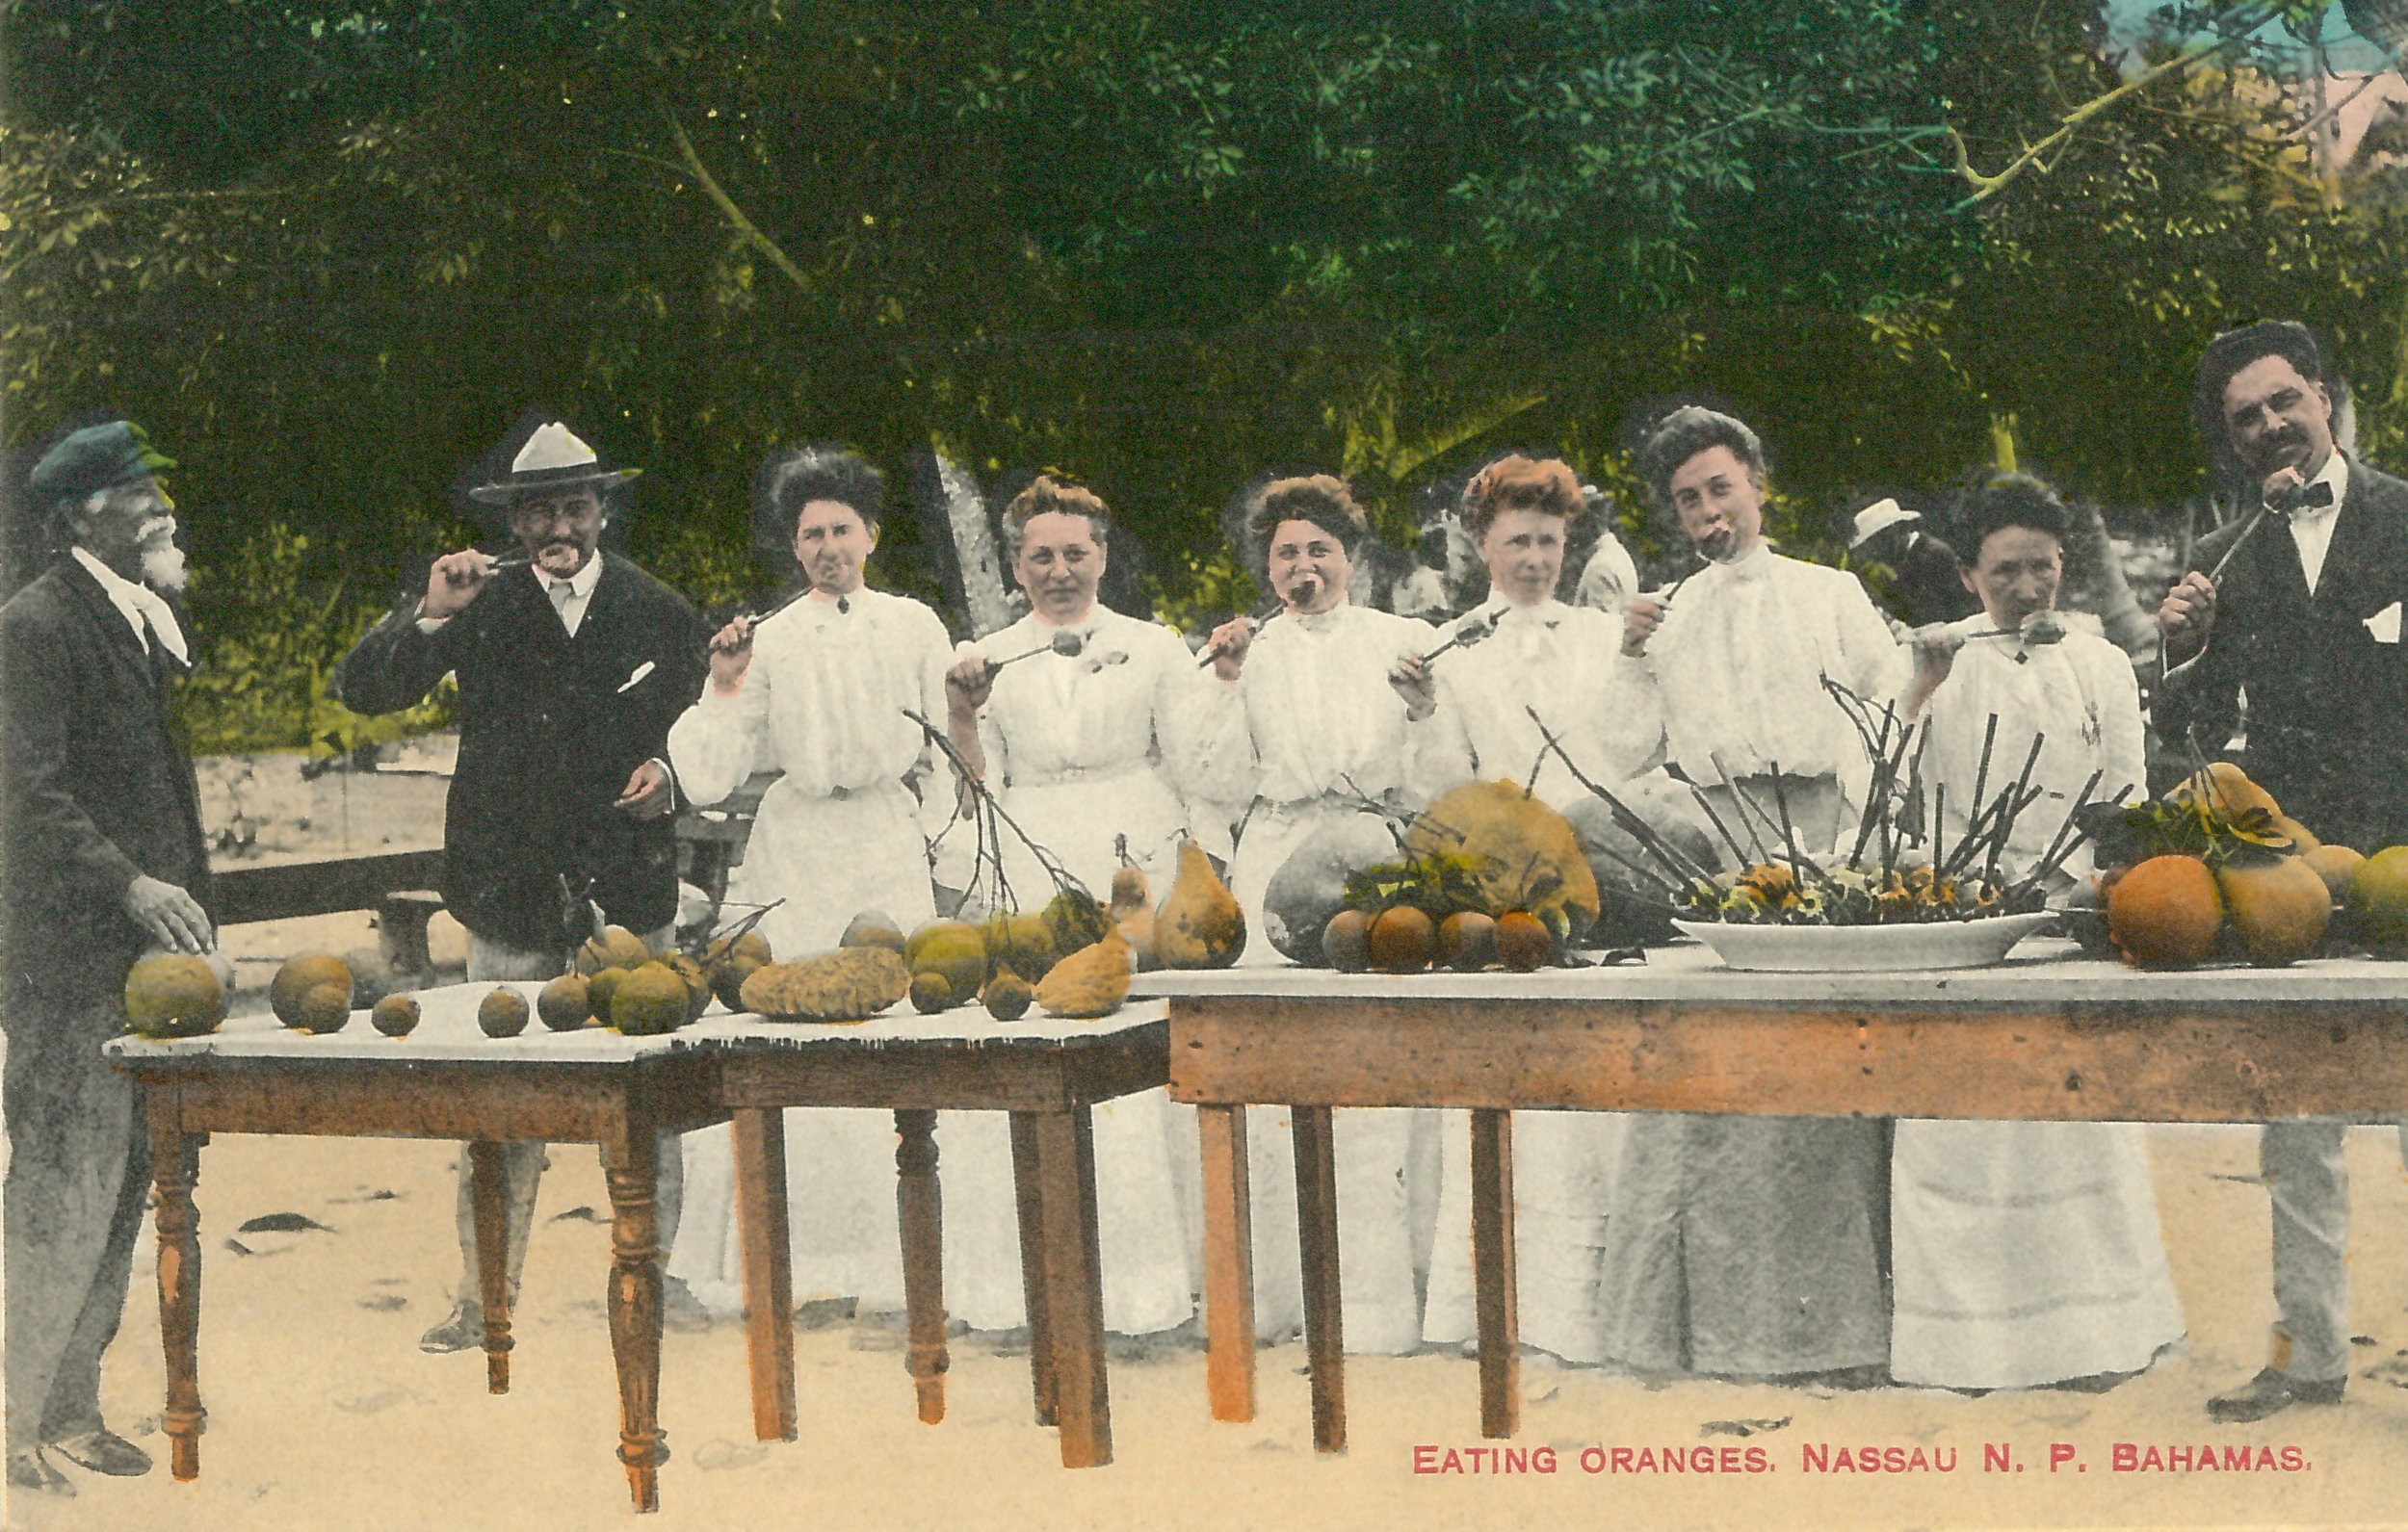 """James """"Doc"""" Sands, 'Eating Oranges' (estimated c.1890-1930), hand painted postcard. """"Visitors line up to sample exotic fruit"""". Images courtesy of the NAGB. Donated by Stephen Lash."""